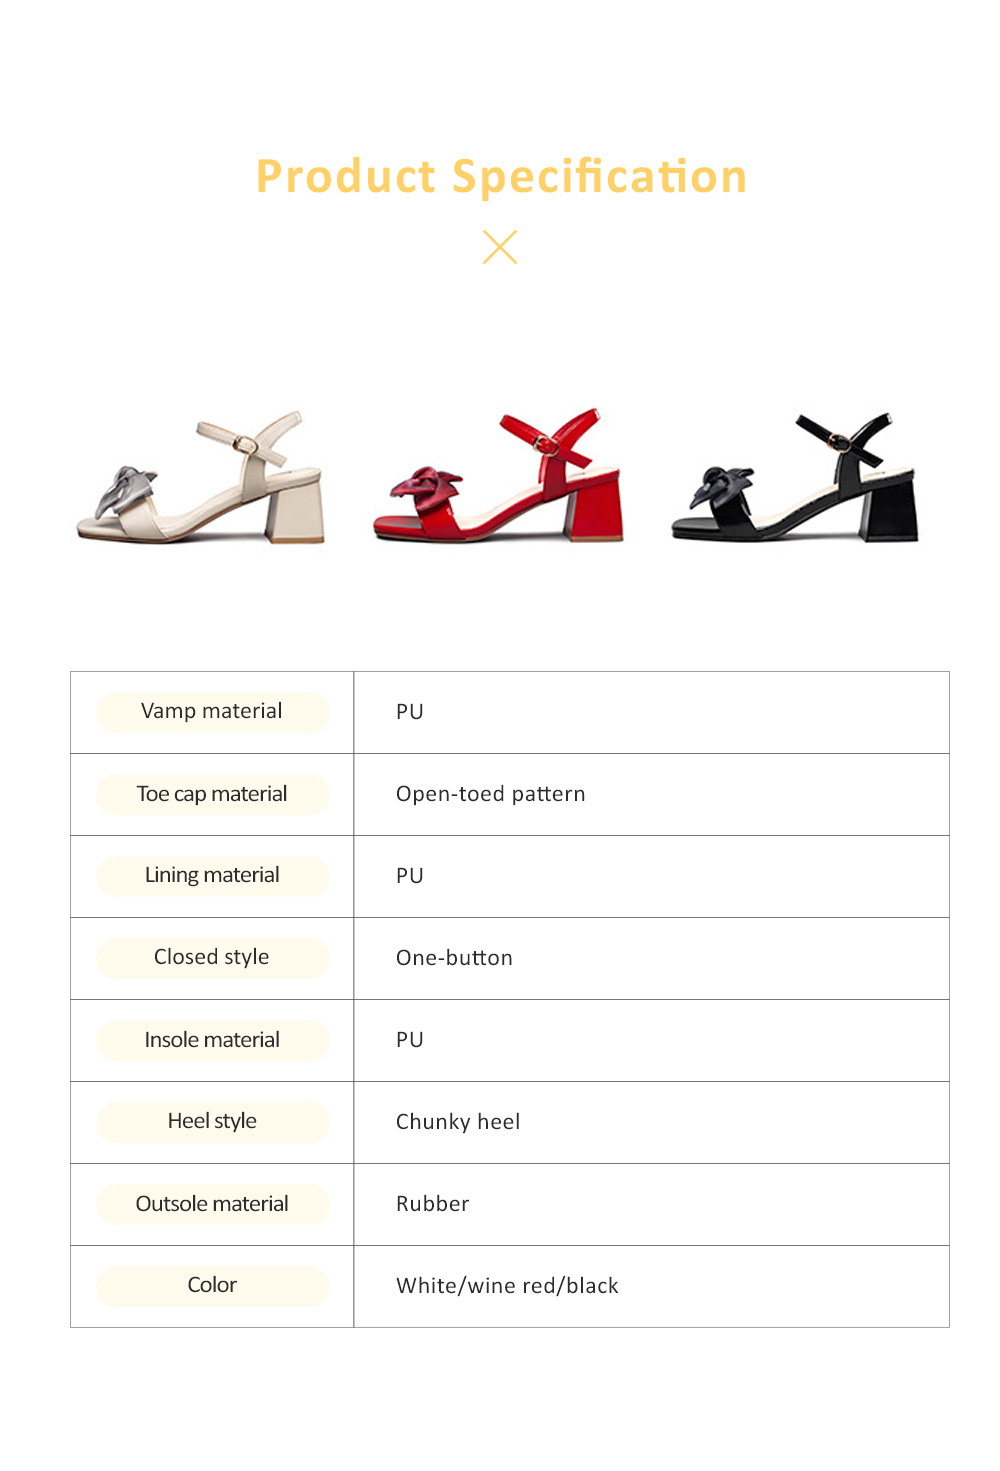 2019 Summer Thick Heel Shoes with  Sweet Bow, PU and Rubber Material Block High Heel Sandals for Shopping, Dating, Party, Holiday 5